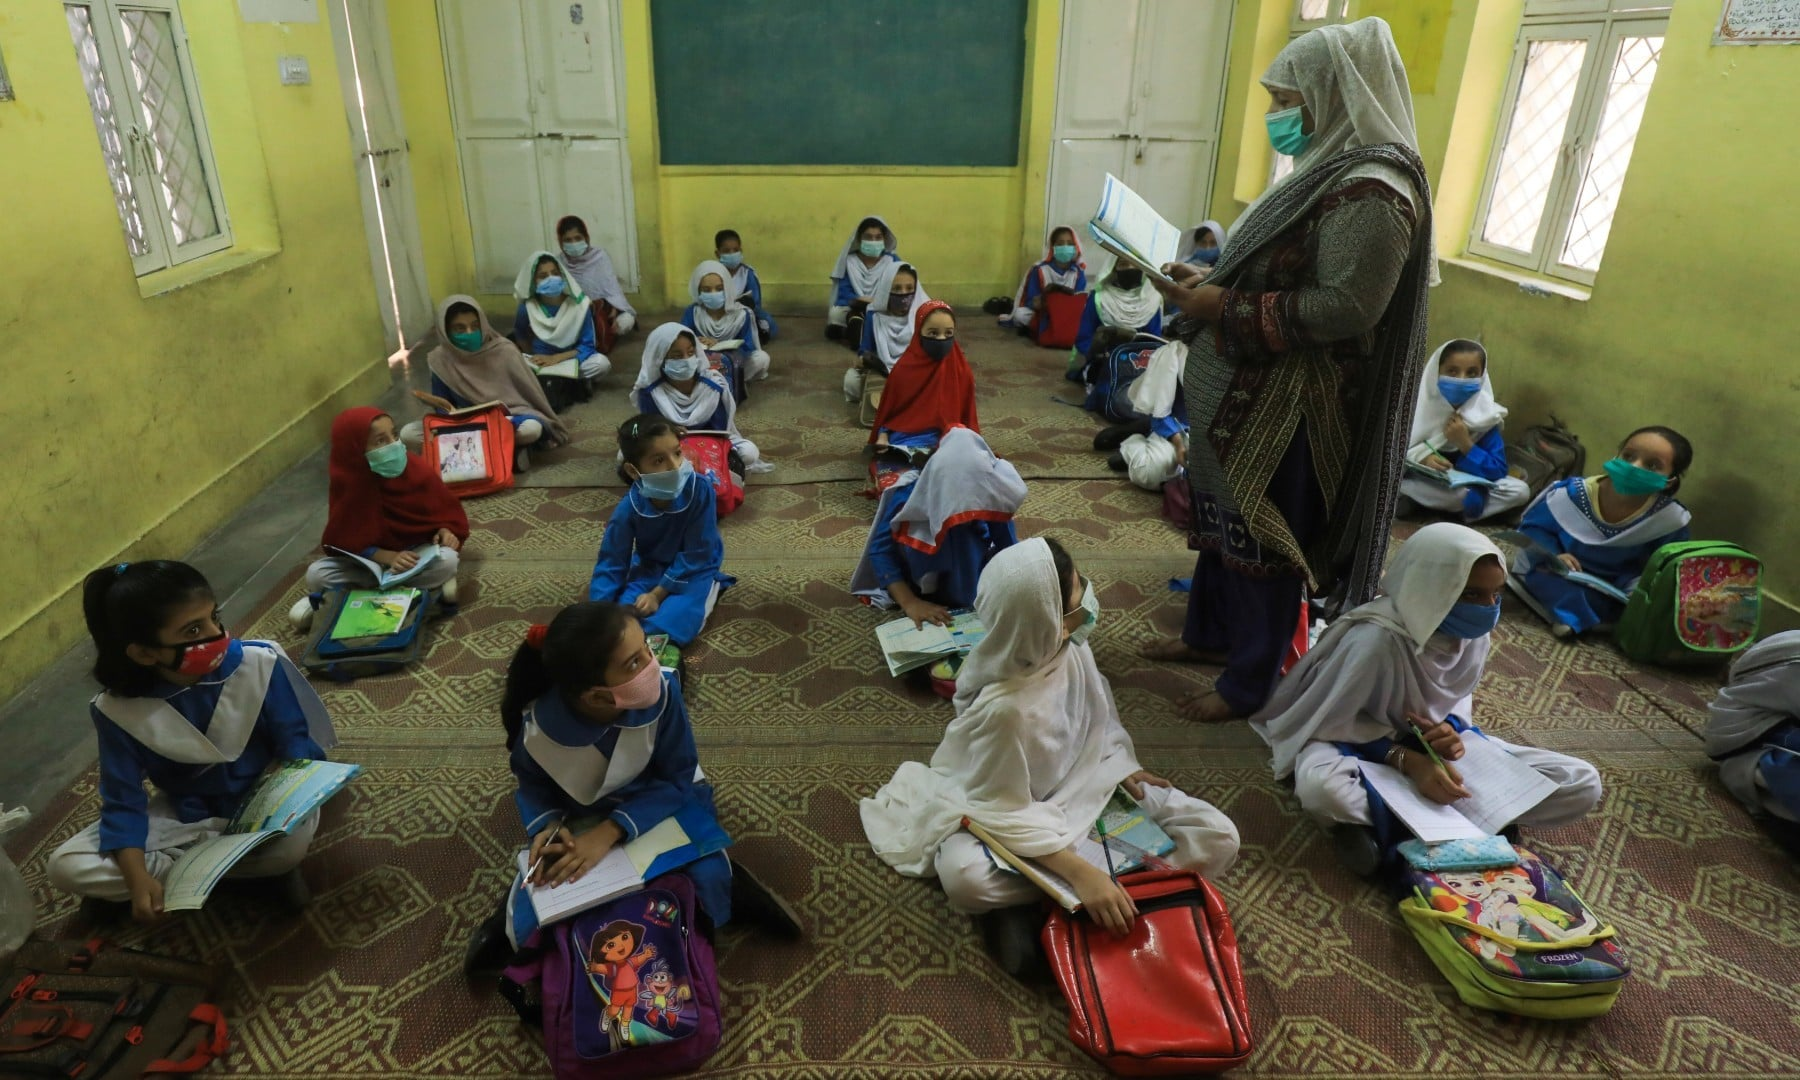 Students wear protective face masks while maintaining a safe distance while they sit on the floor in Peshawar on September 30. — Reuters